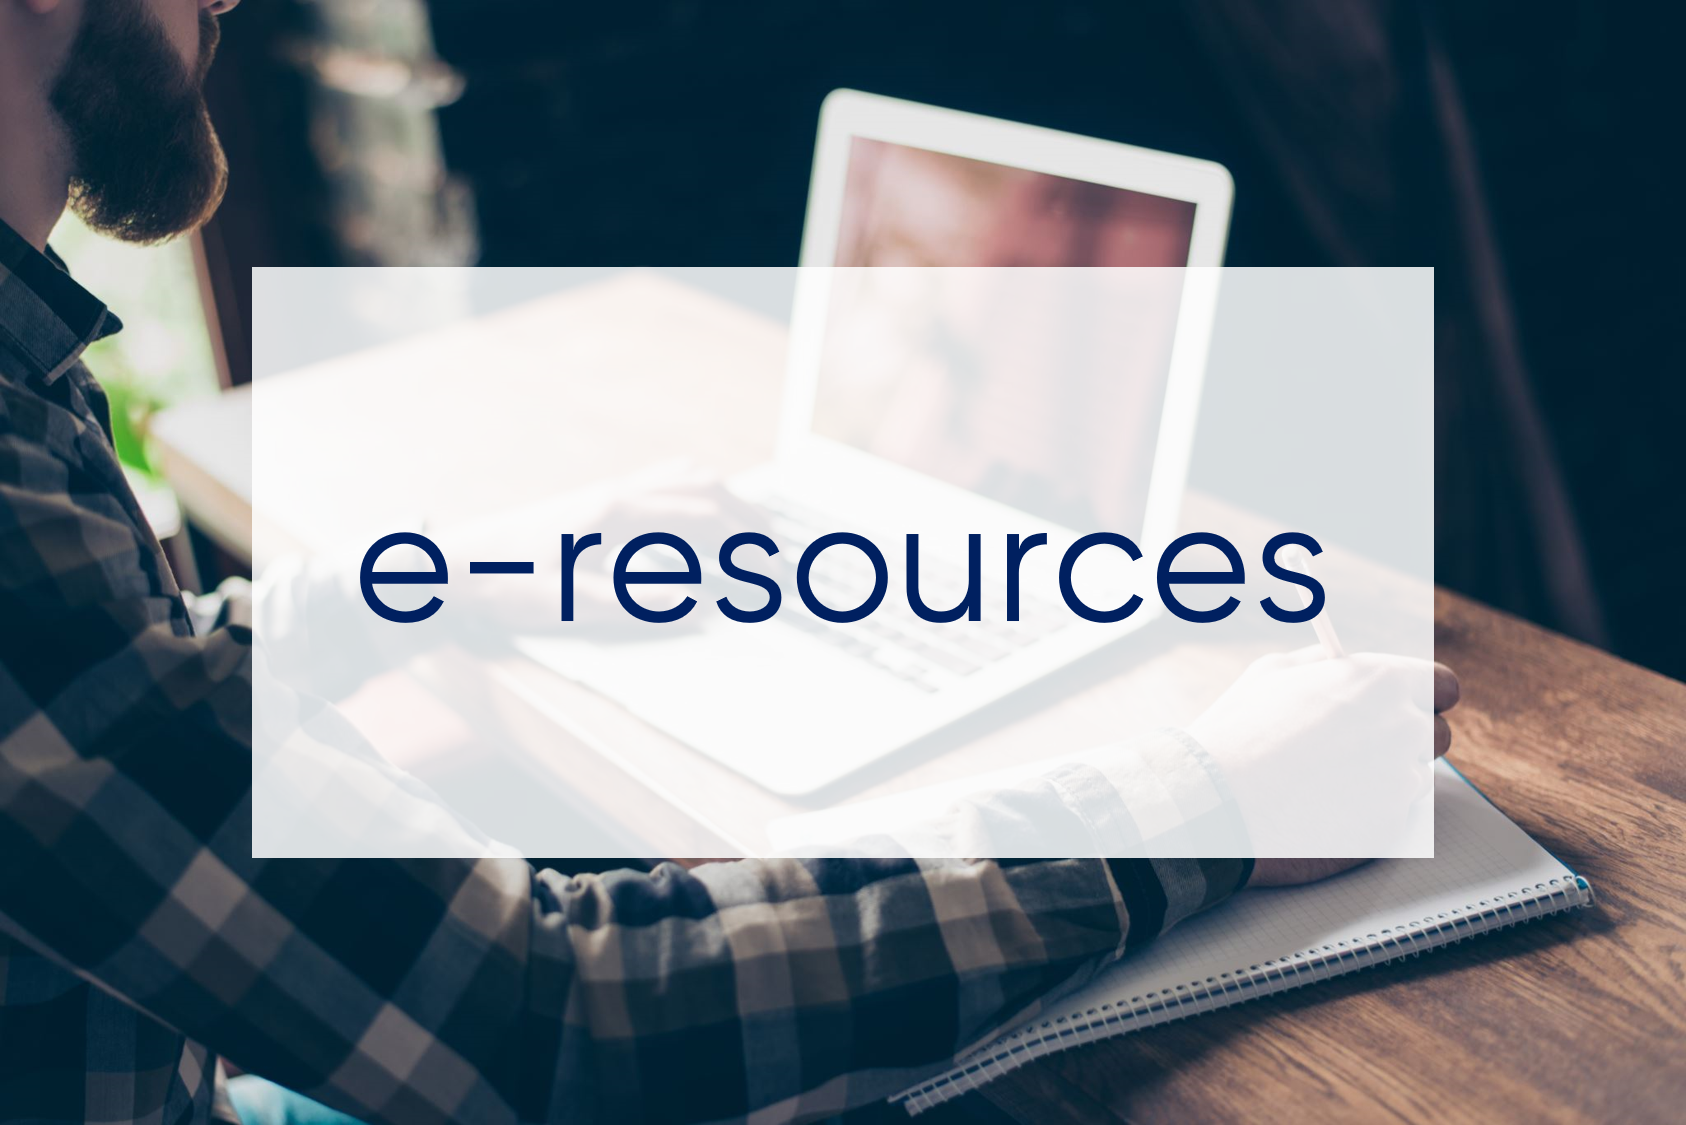 click here to access e-resources